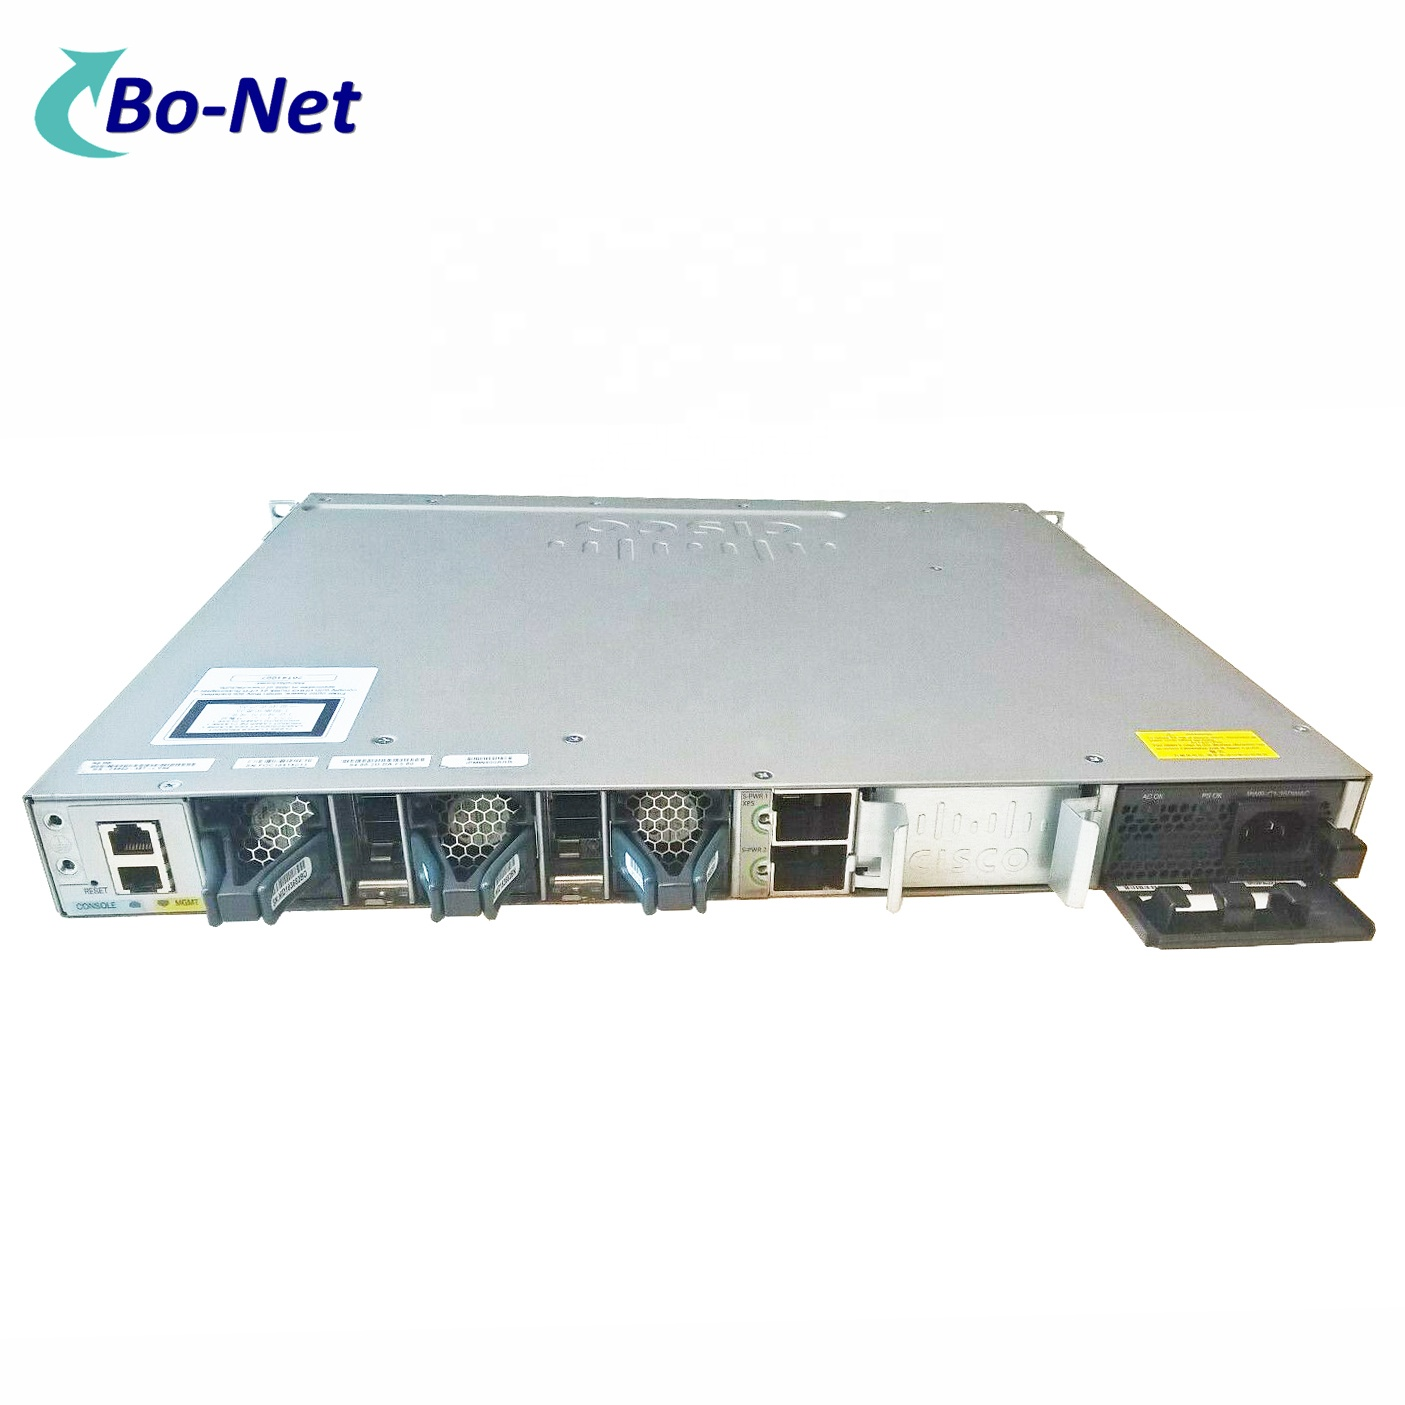 Switch de Rede Original WS-C3850-48T-L 3850 Portas Gigabit Ethernet Switch 48 W/C3850-NM-2-10G